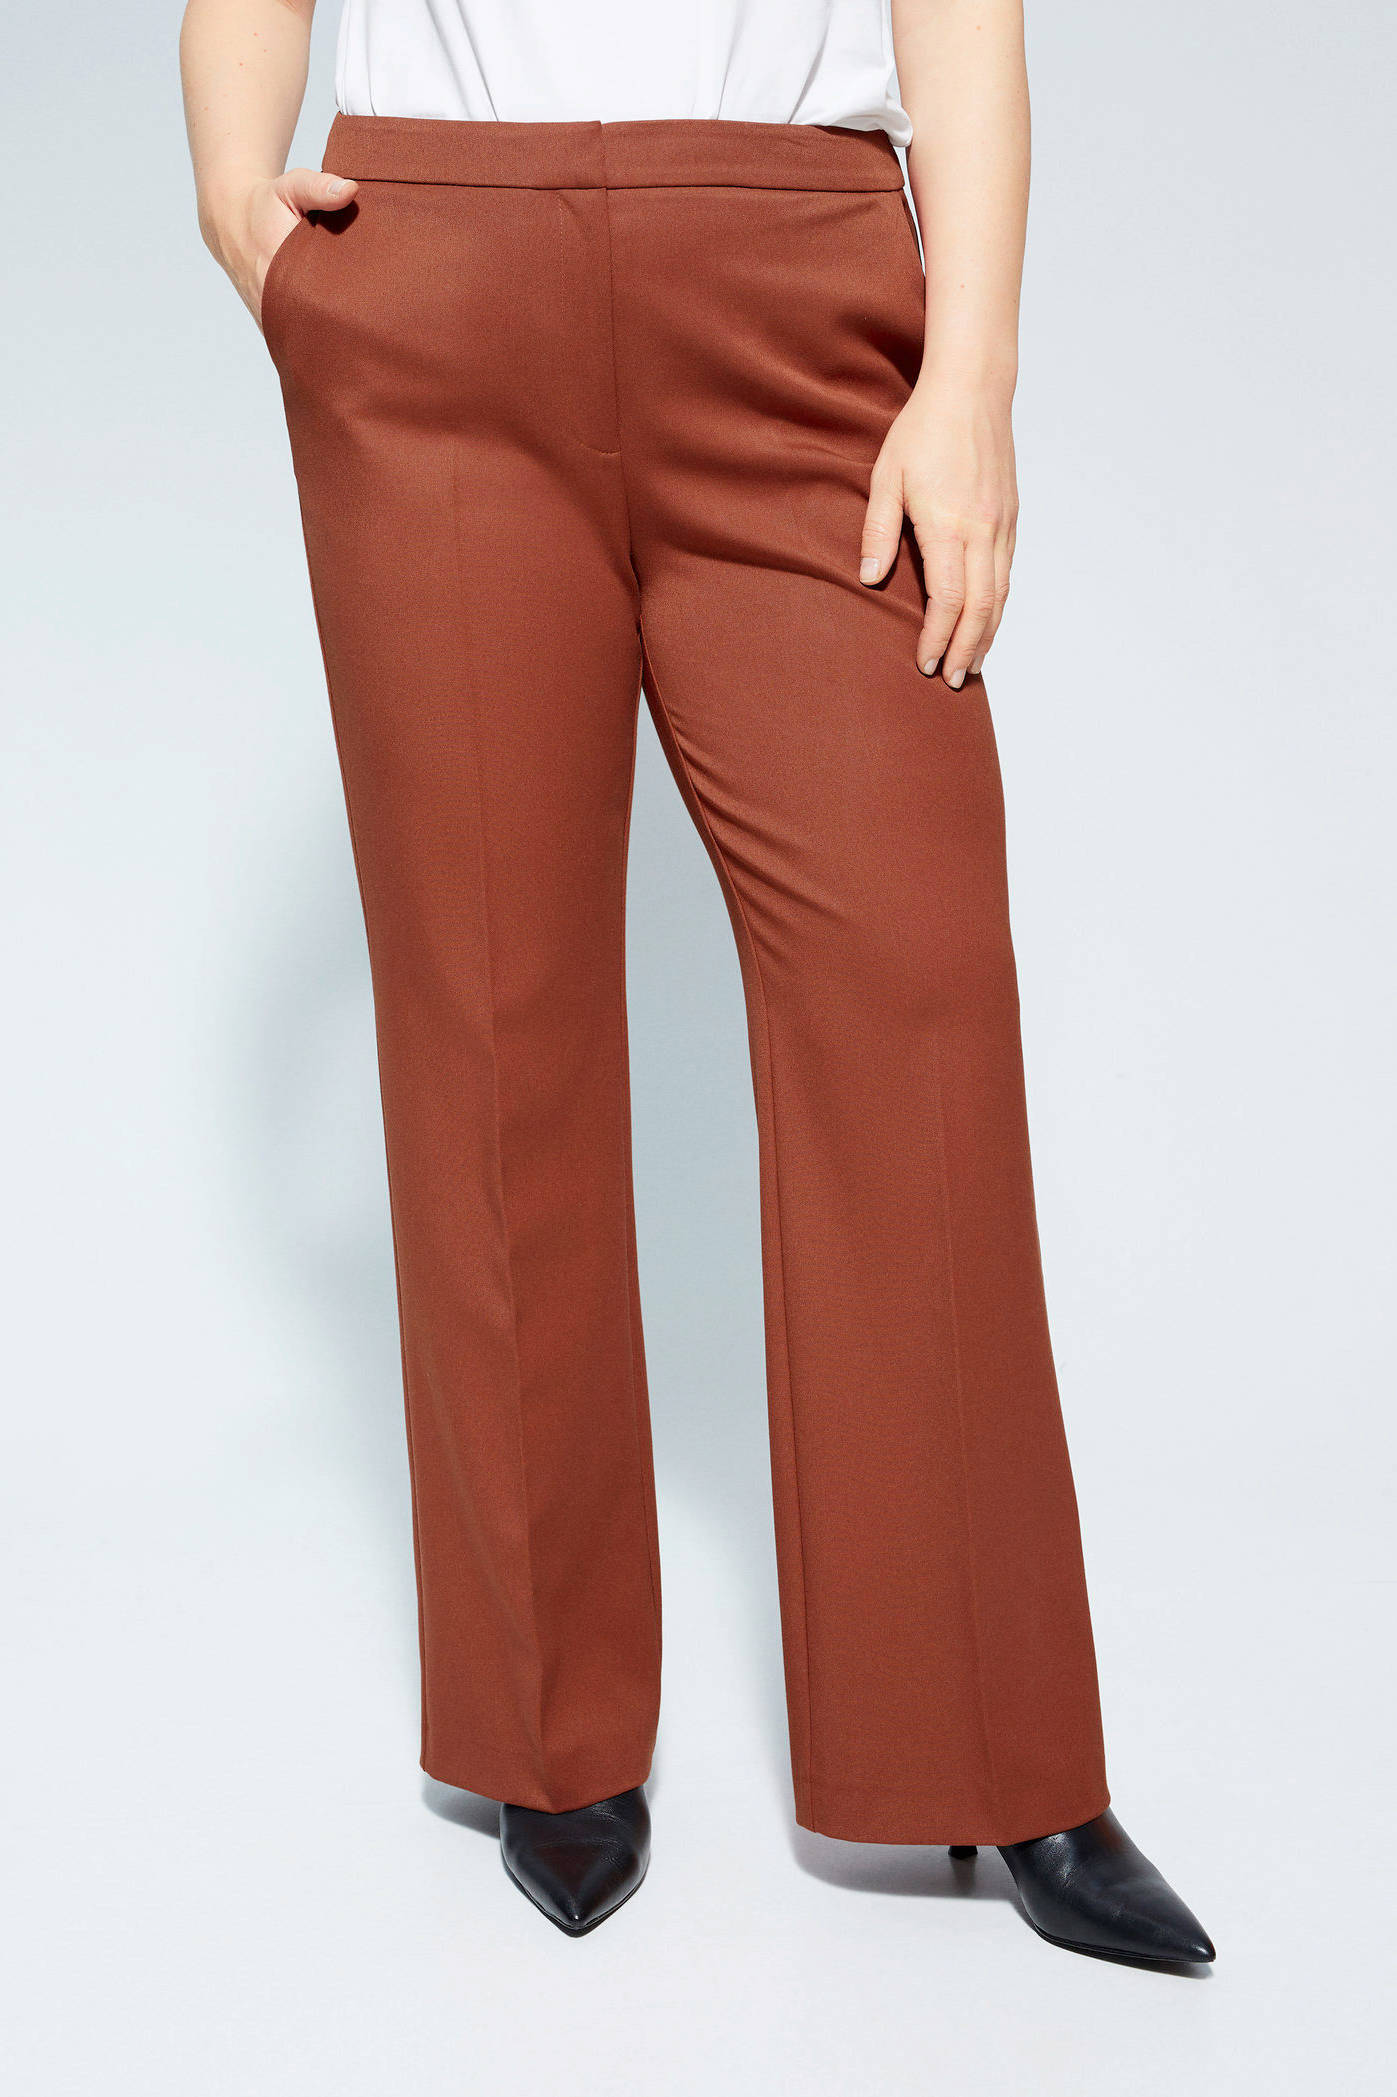 Violeta By Mango High Waist Loose Fit Pantalon Oranje aUypnLvr